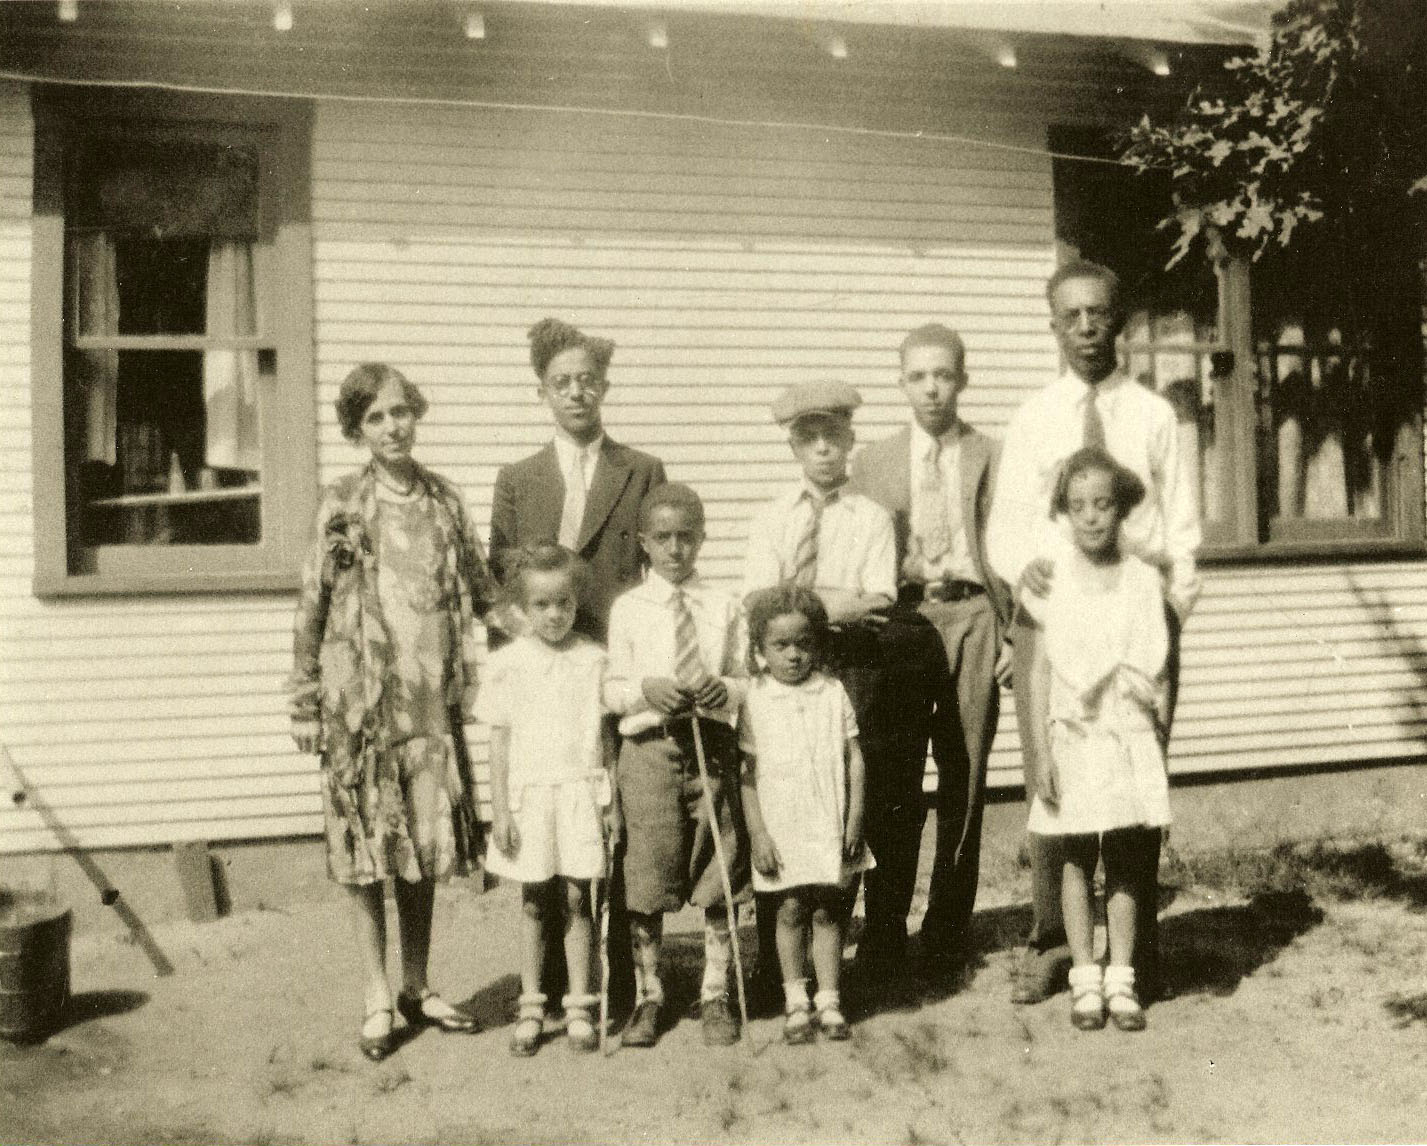 The Cleage Family at Idlewild about 1929